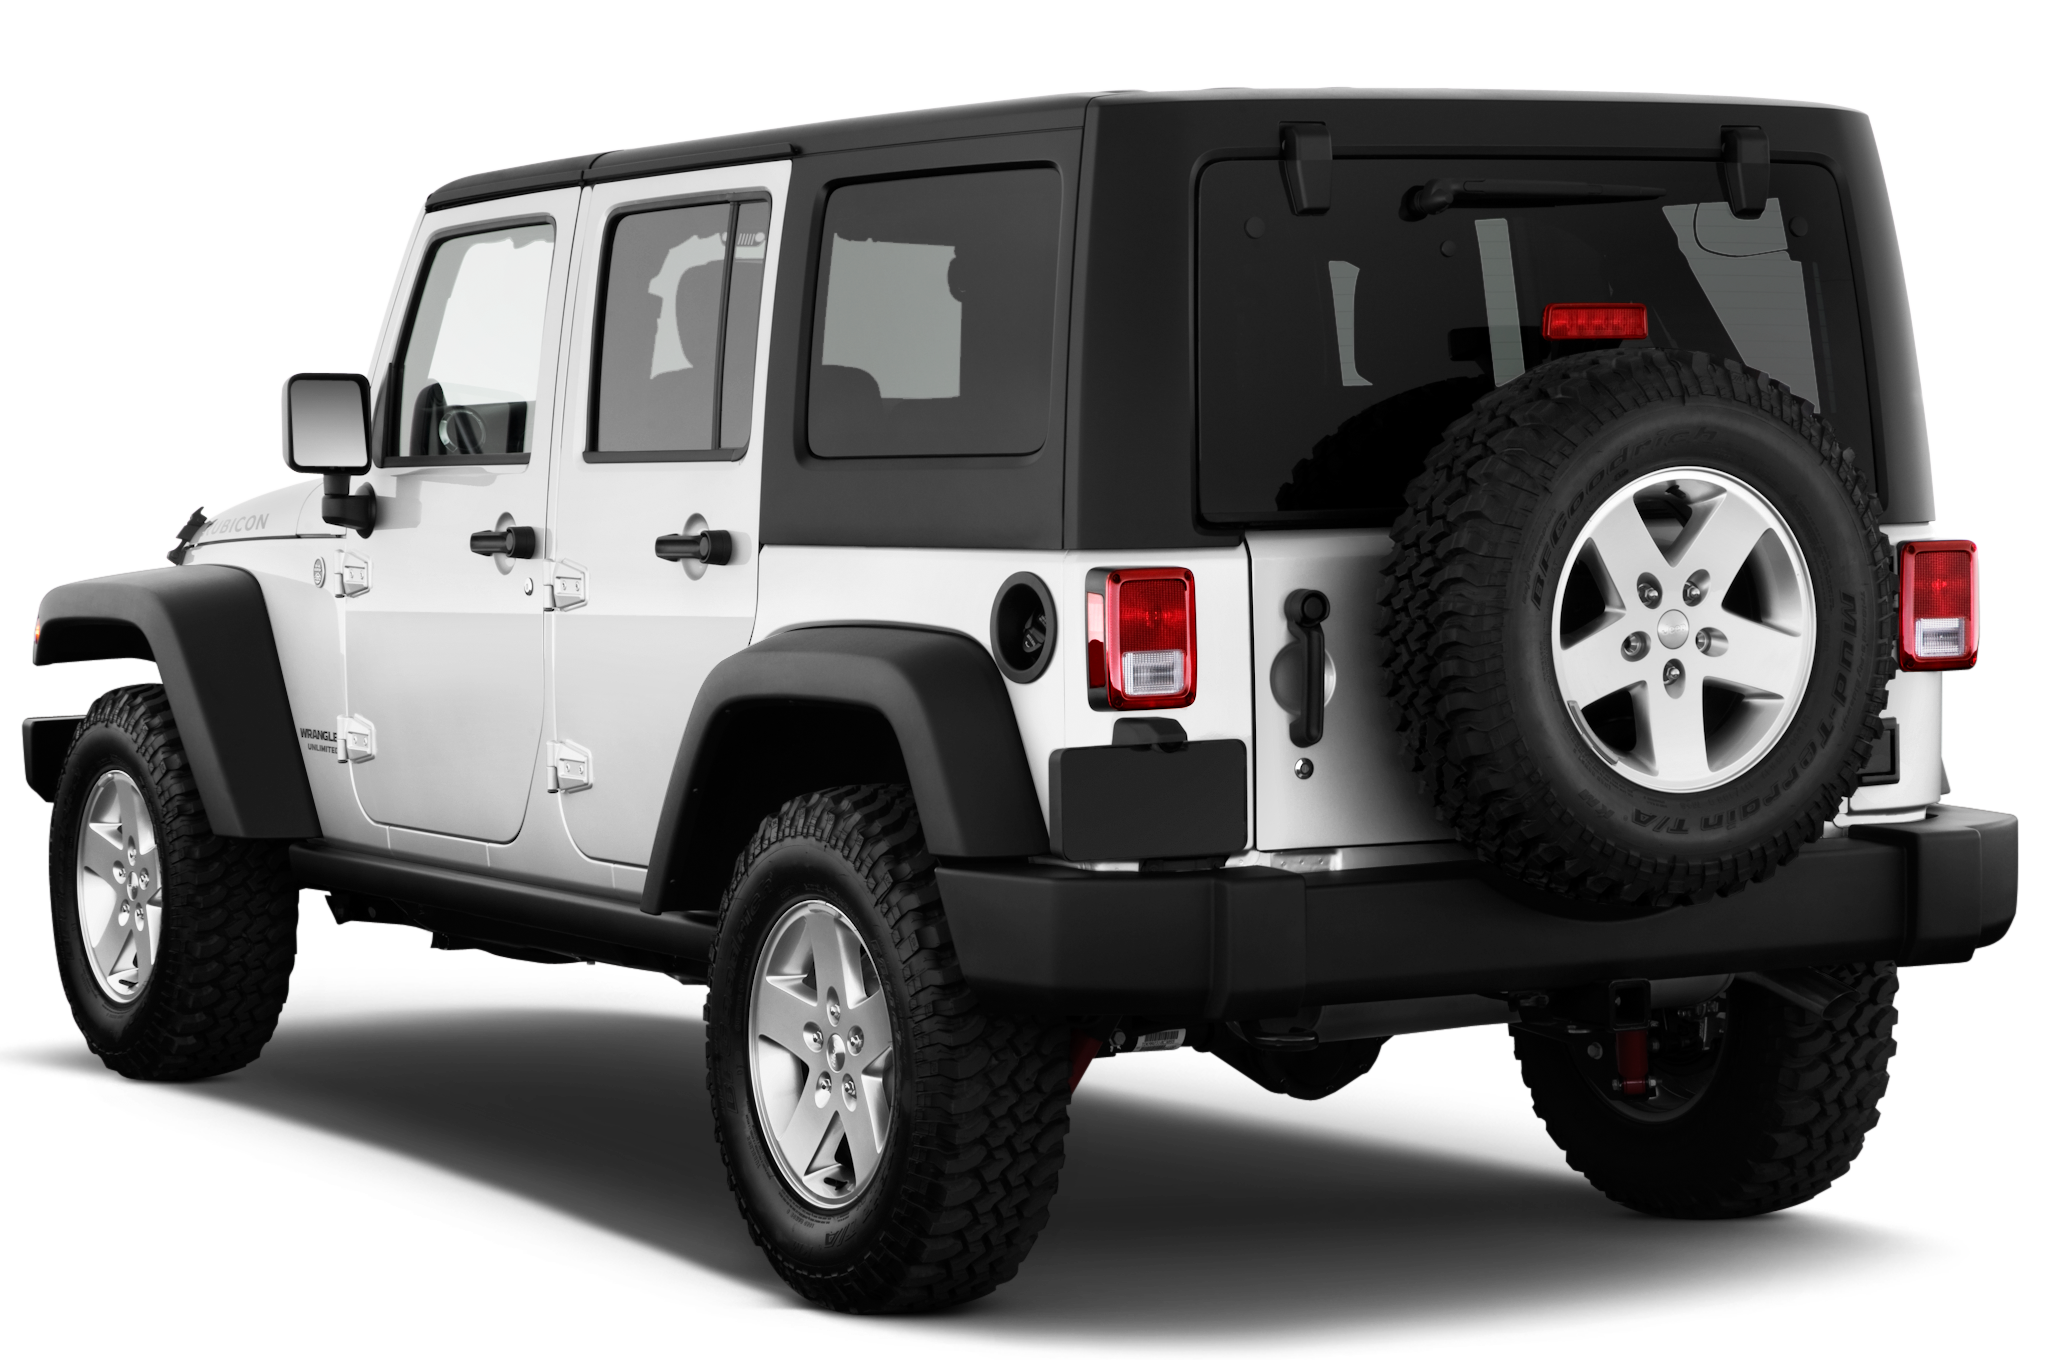 Now you can download Jeep Transparent PNG Image